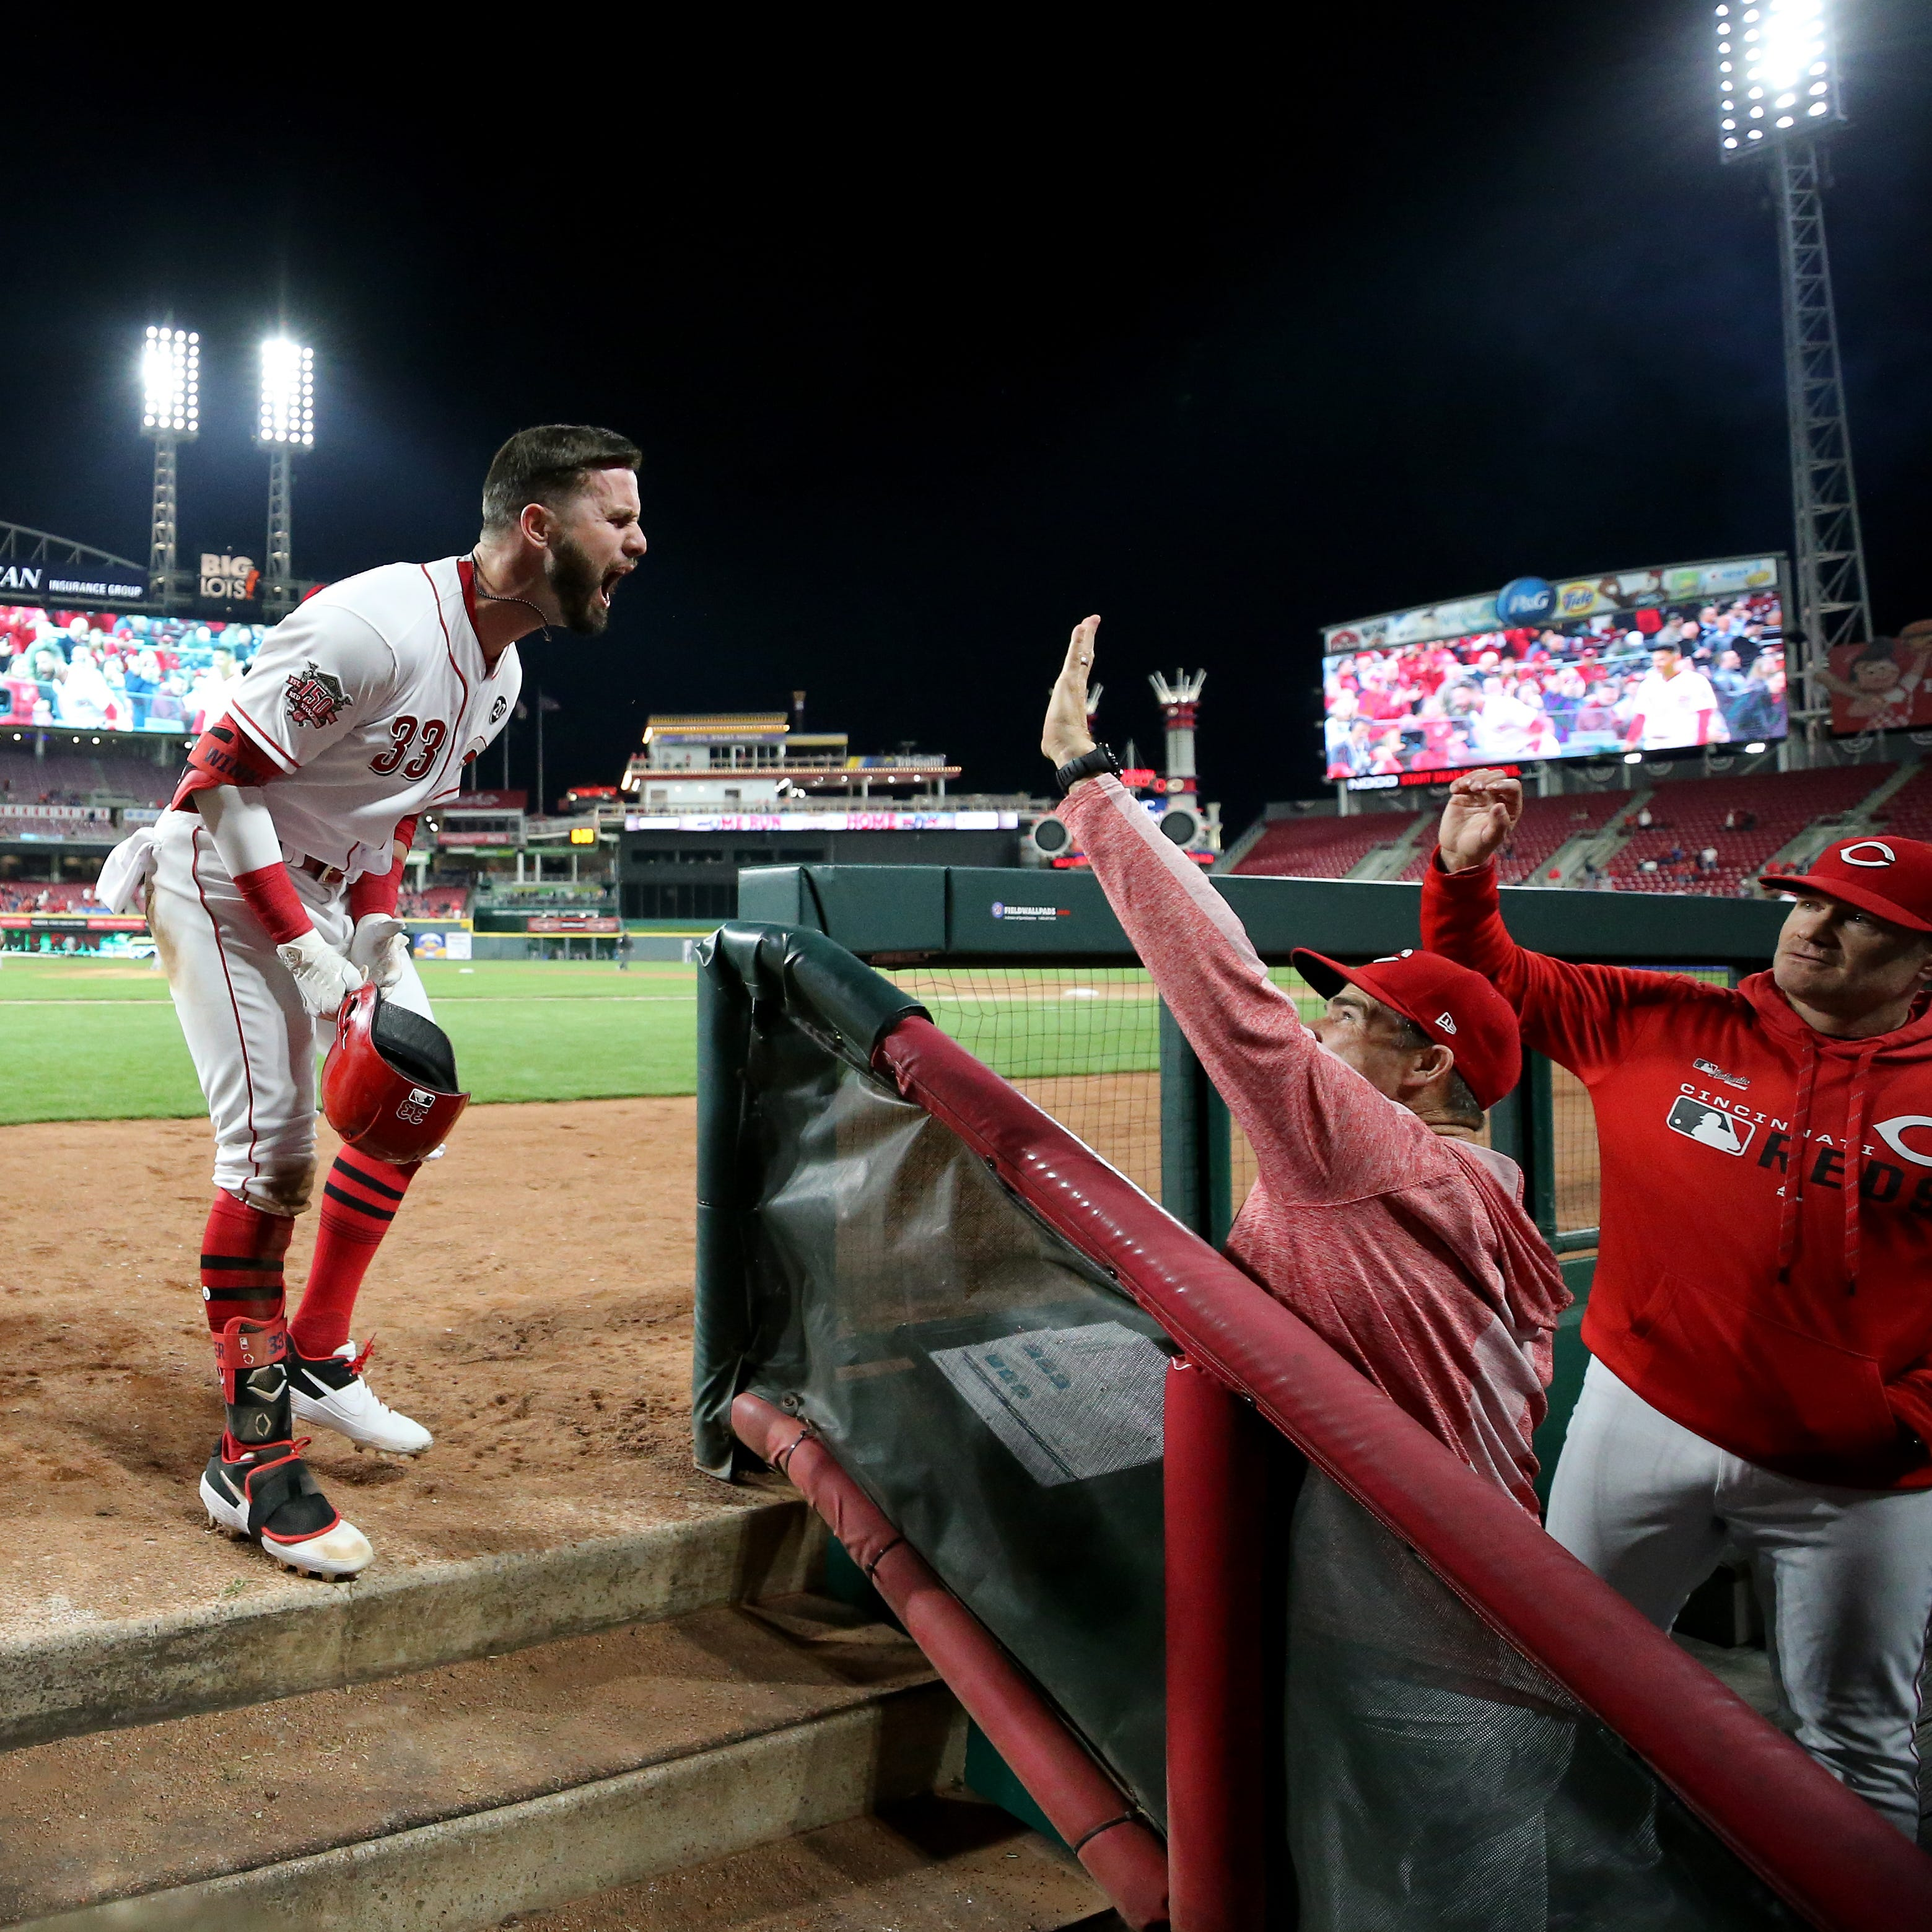 José Iglesias and Jesse Winker power Cincinnati Reds to 2-1 win against Miami Marlins